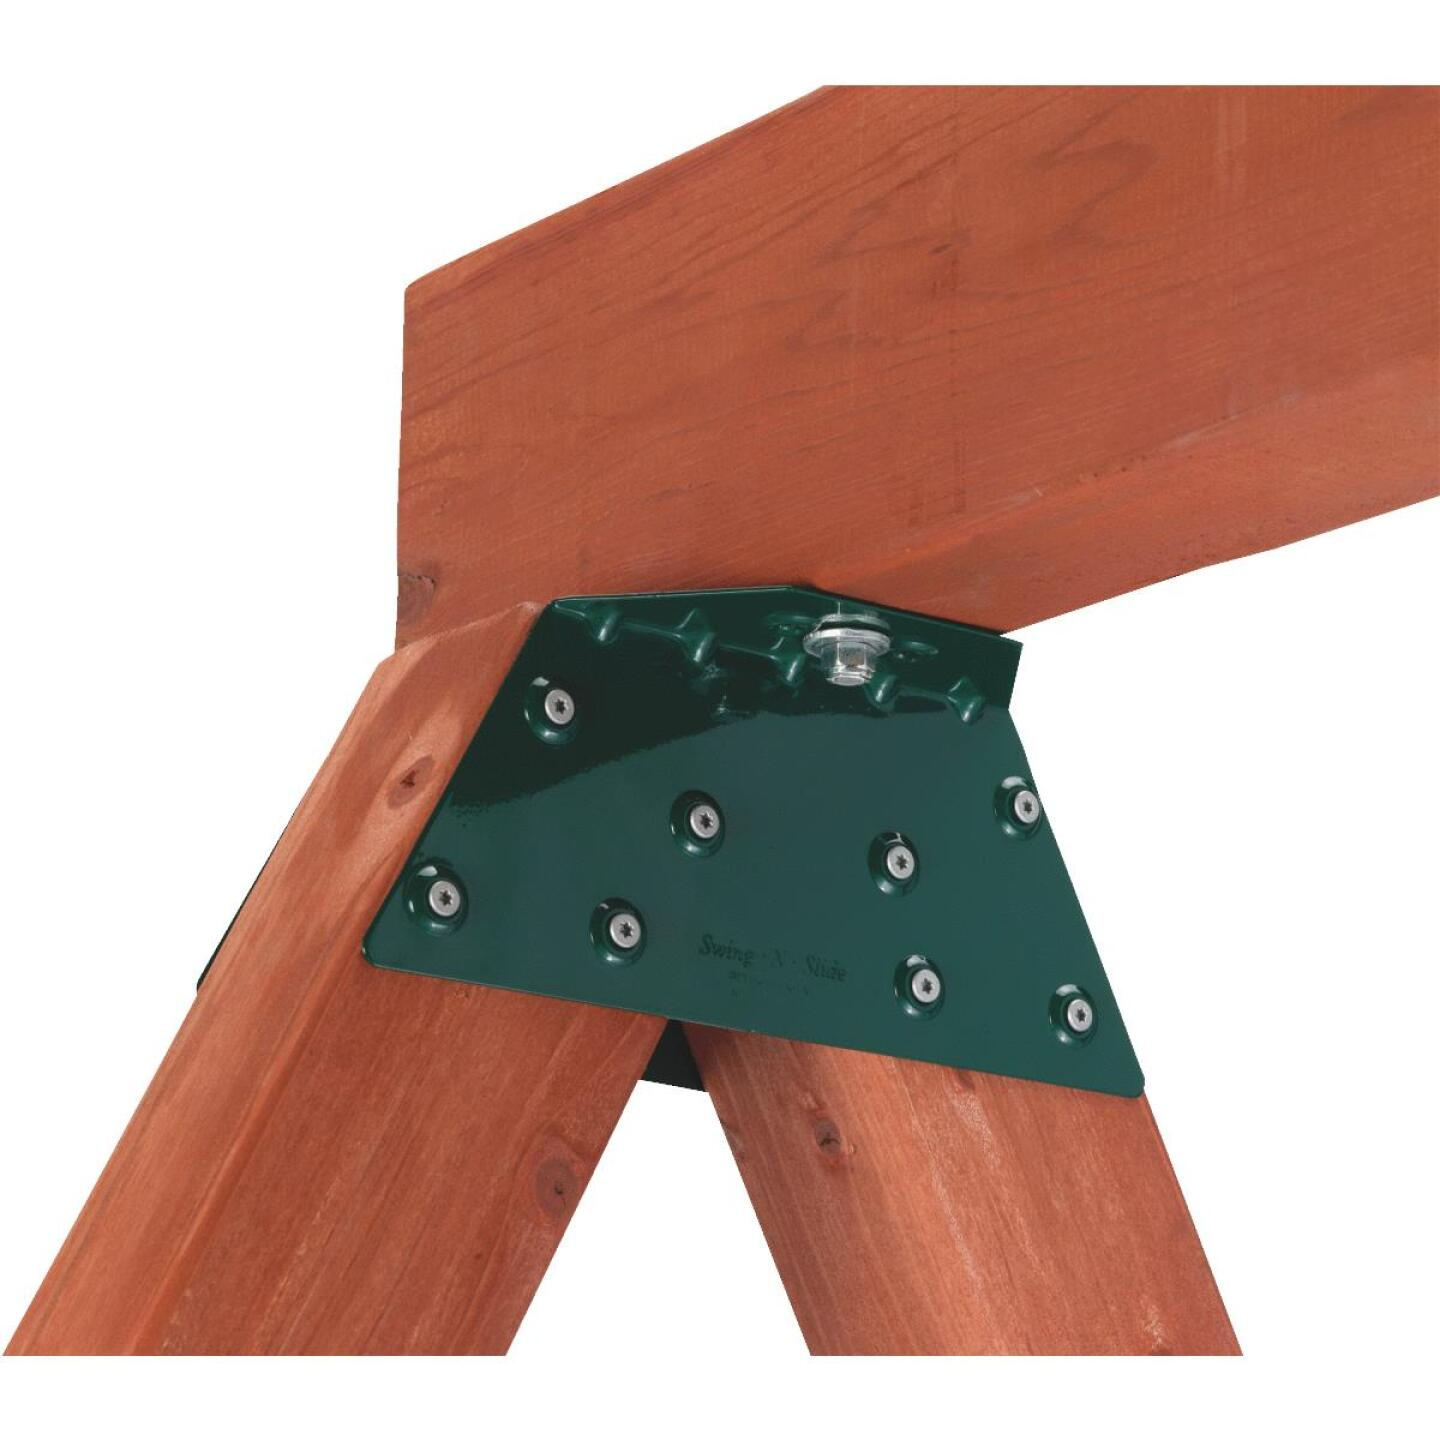 Swing N Slide EZ Frame Green Powder Coated Steel Angle Brace Image 1